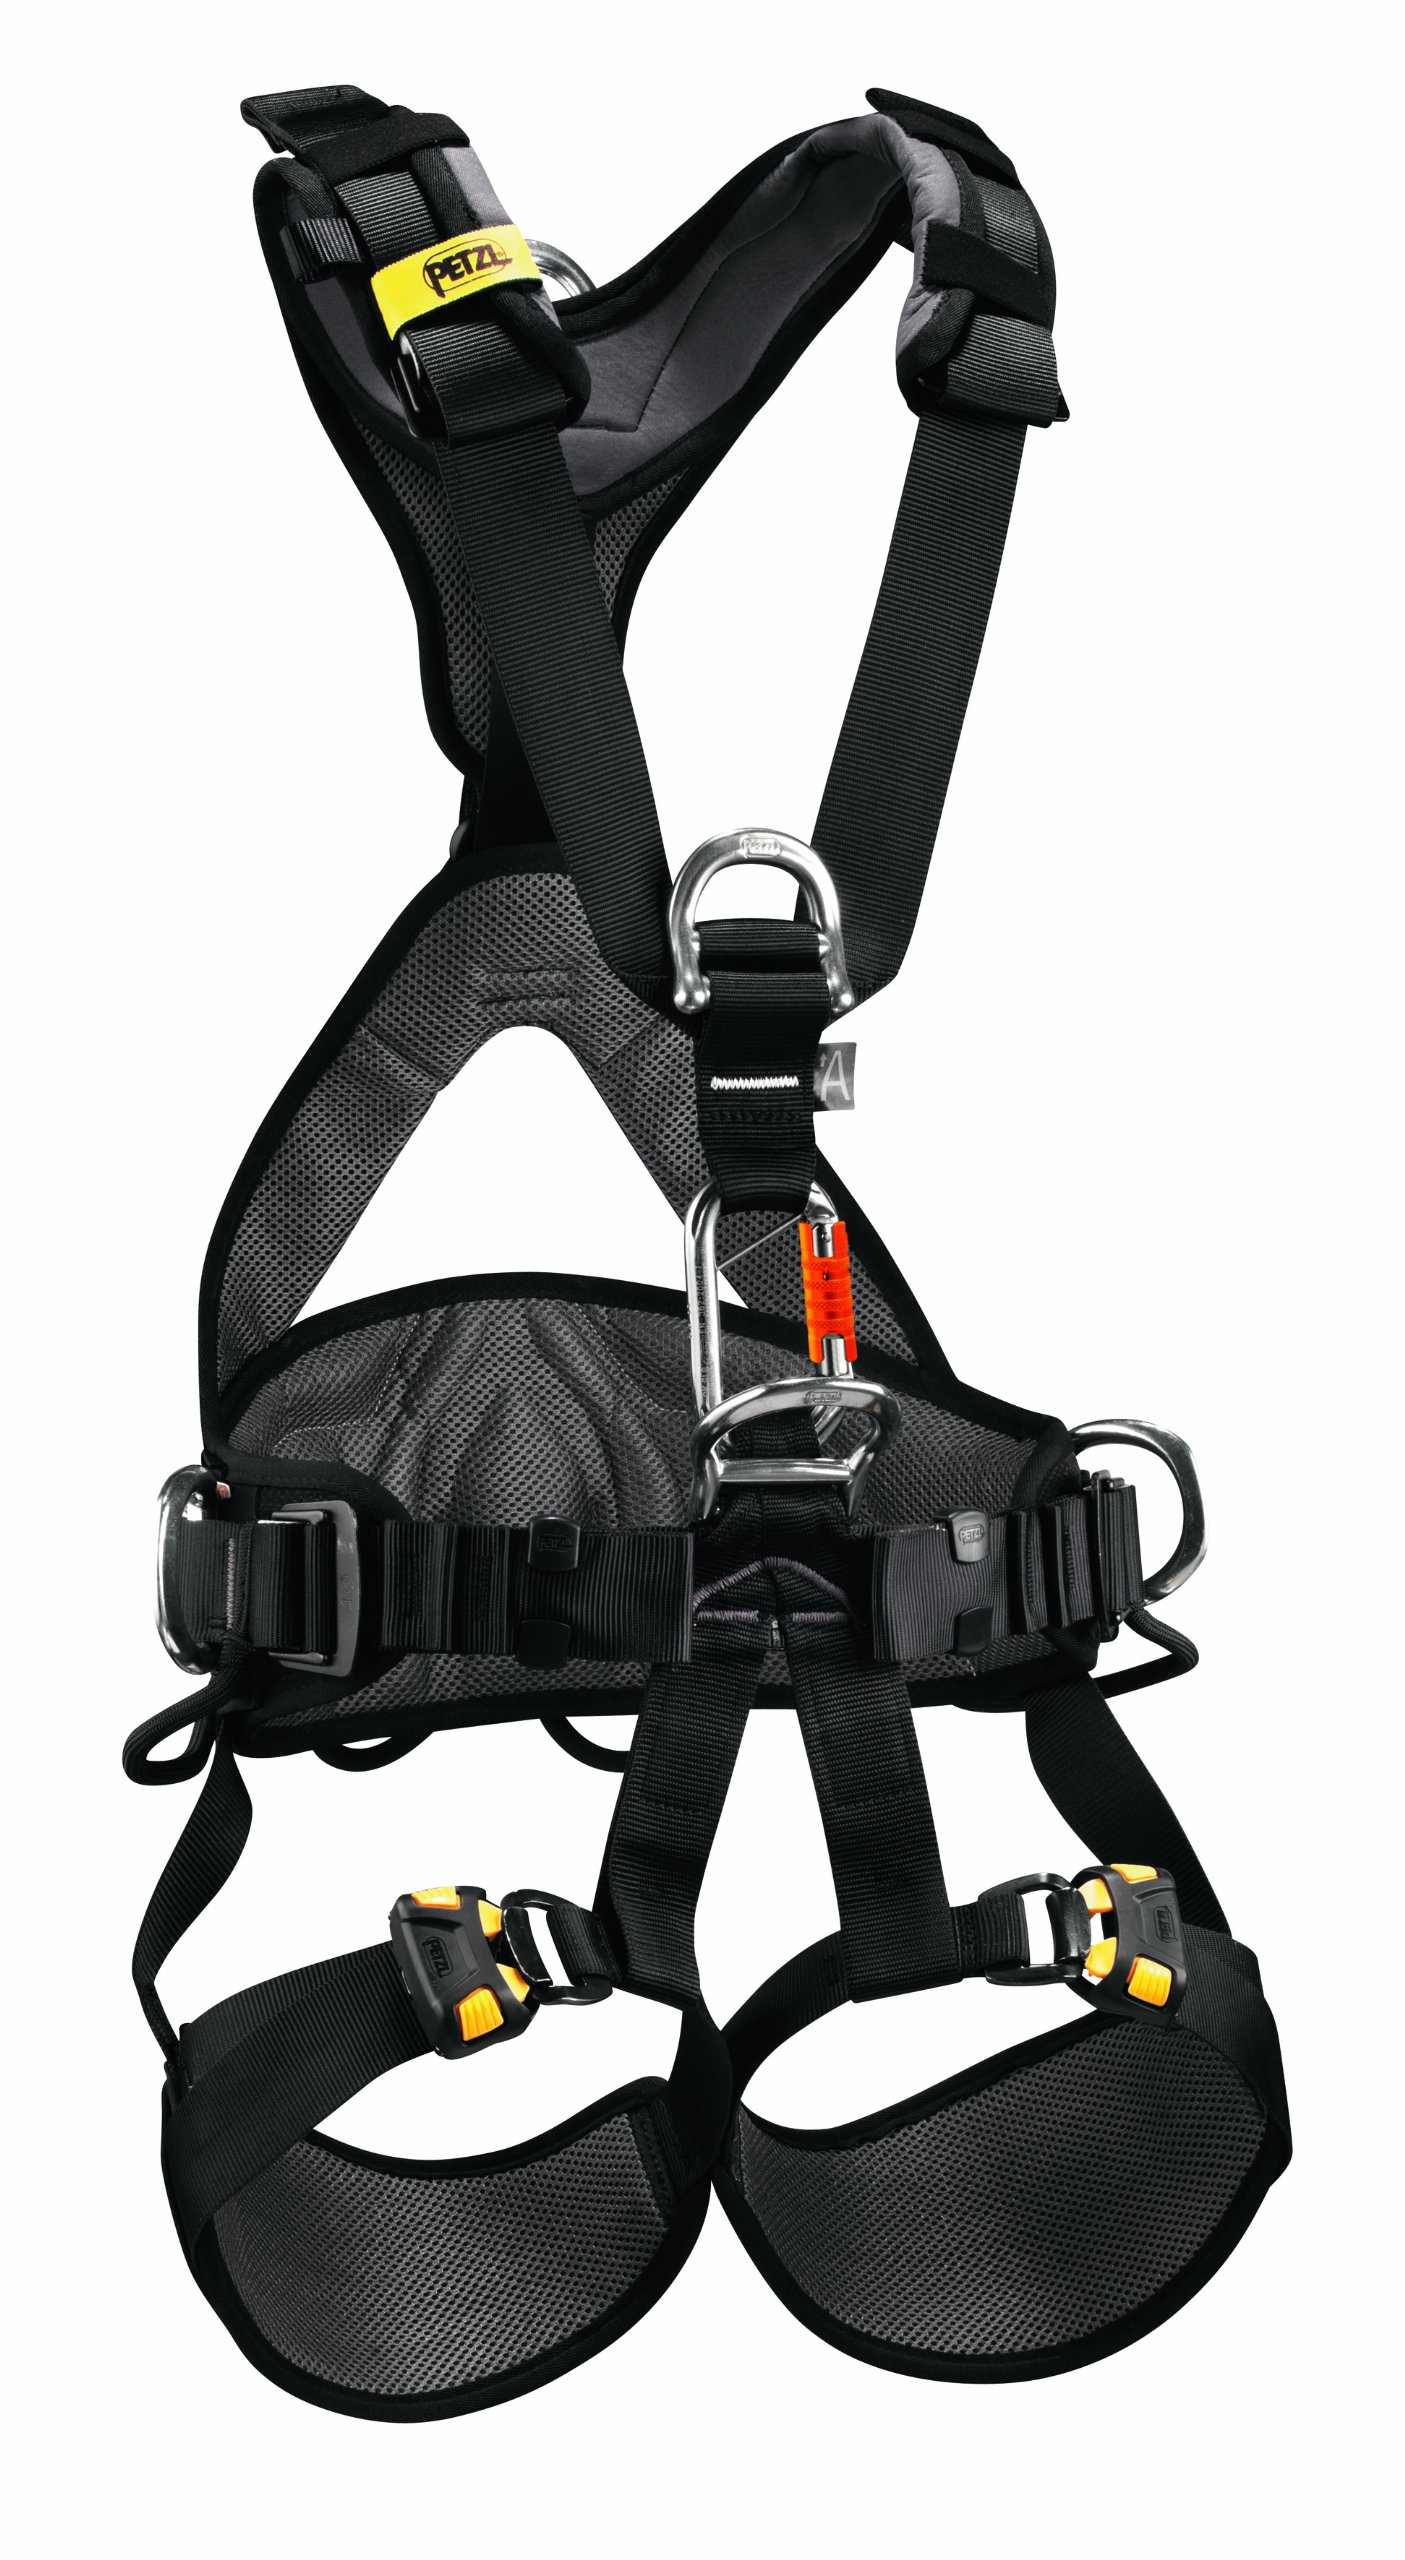 PETZL - AVAO BOD Fast International Version, Comfortable Harness for Fall Arrest, Size 1, Black/Yellow